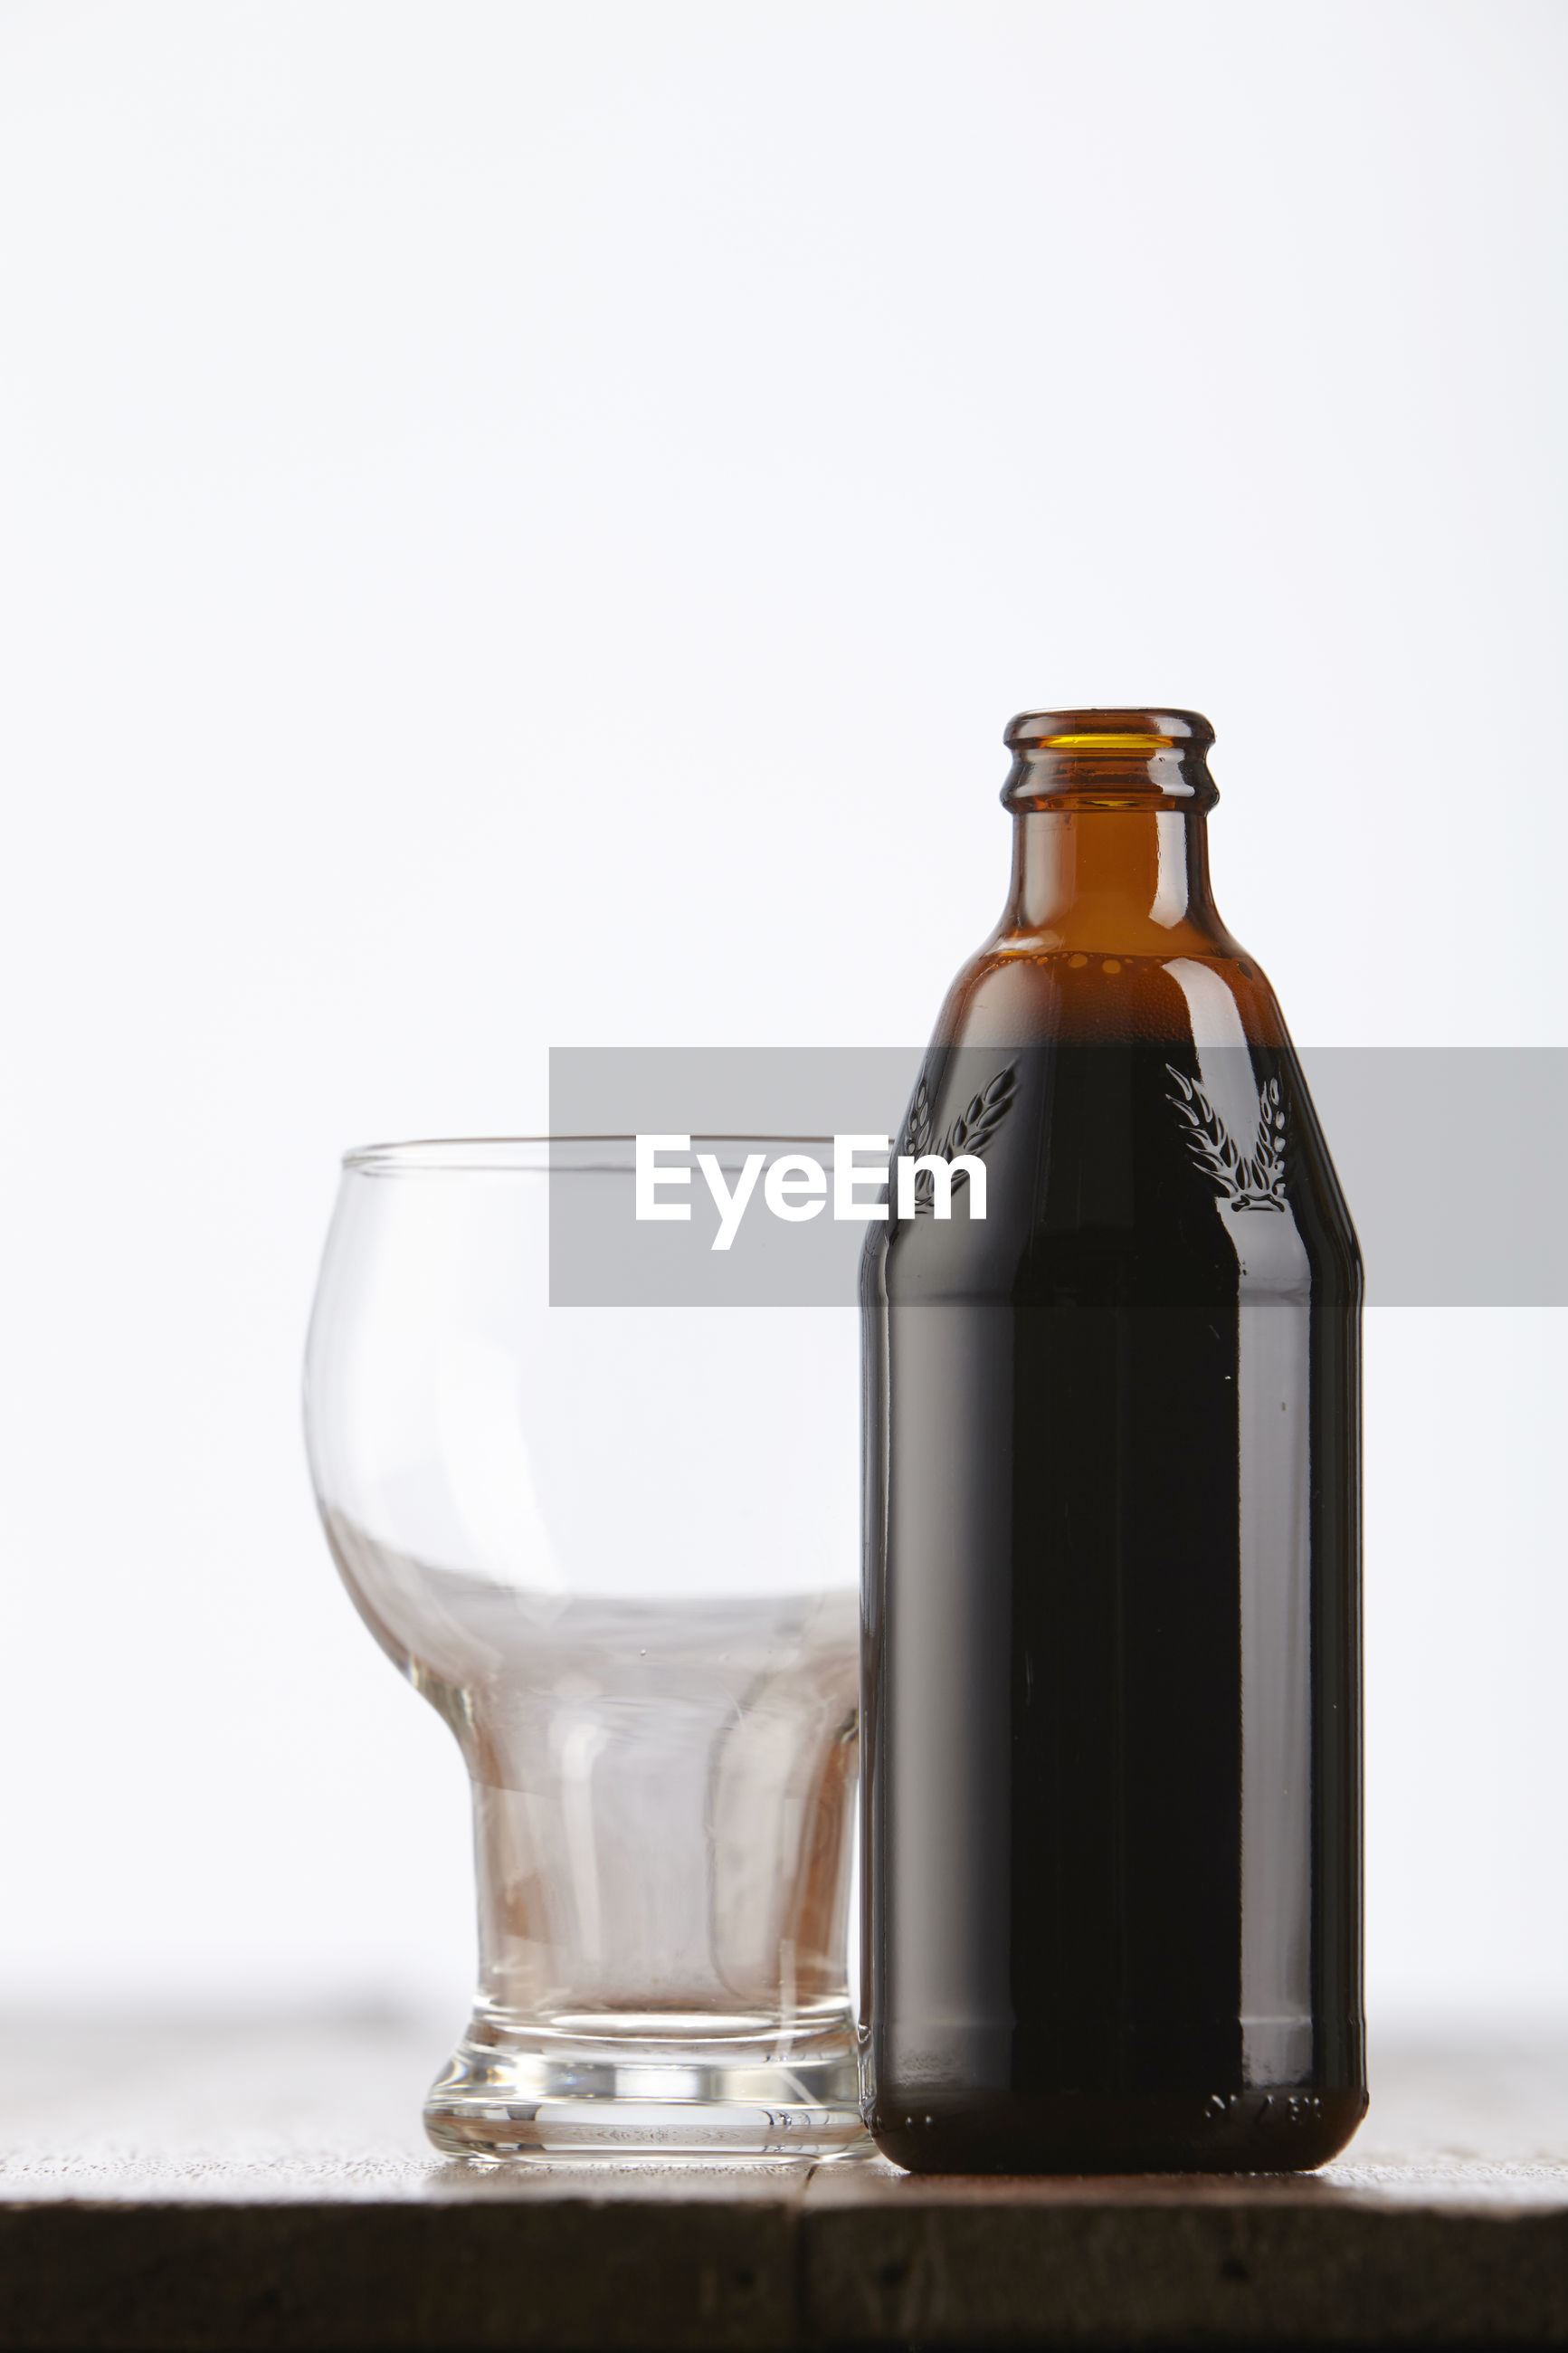 Close-up of drink in bottle by glass on table against white background